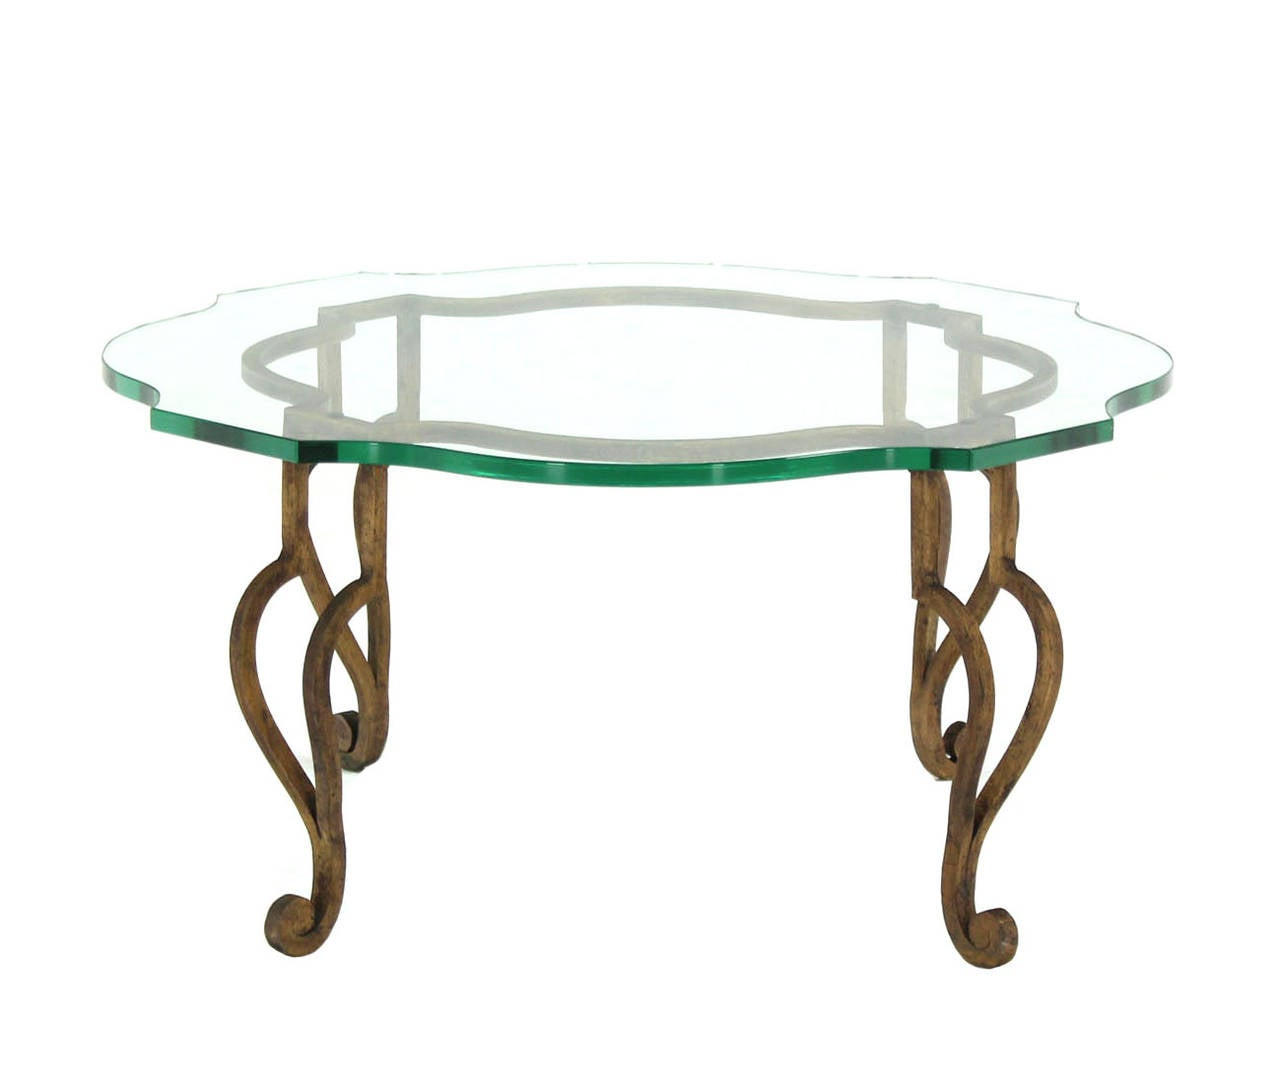 Figural Wrought Iron Base Coffee Table With Thick Glass Top At 1stdibs